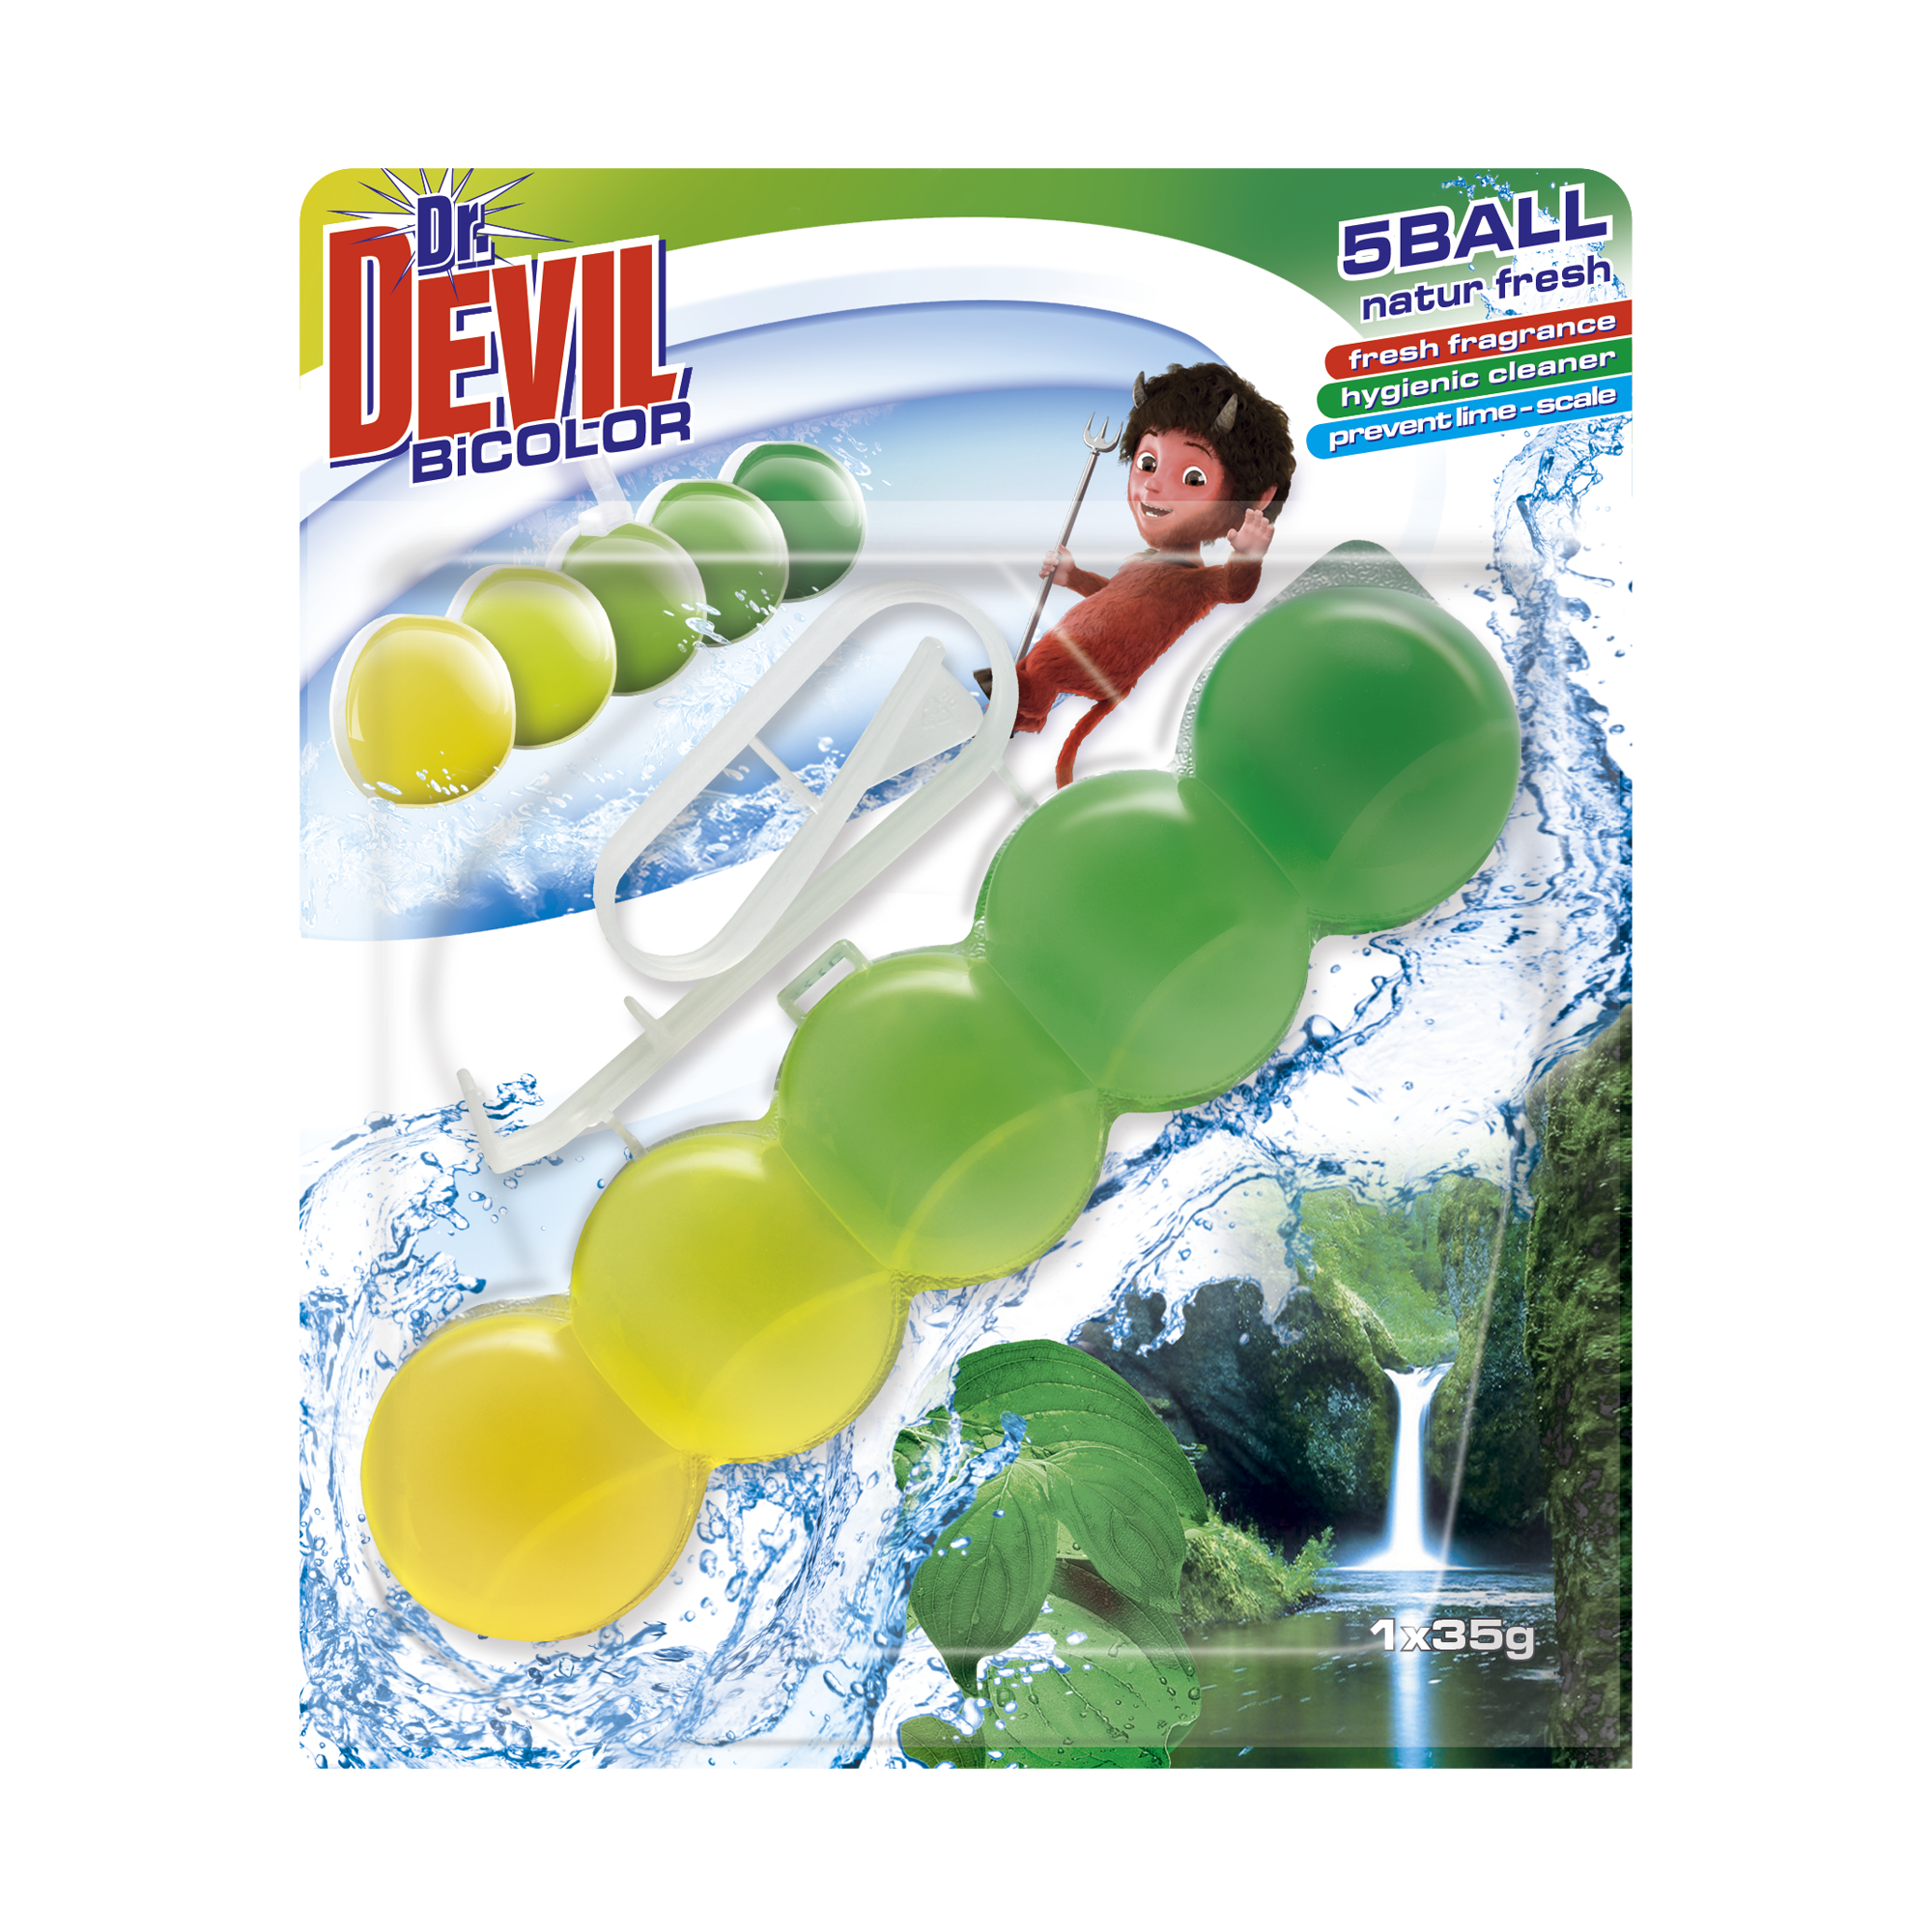 Dr. Devil WC BiCOLOR 5BALL Natur Fresh